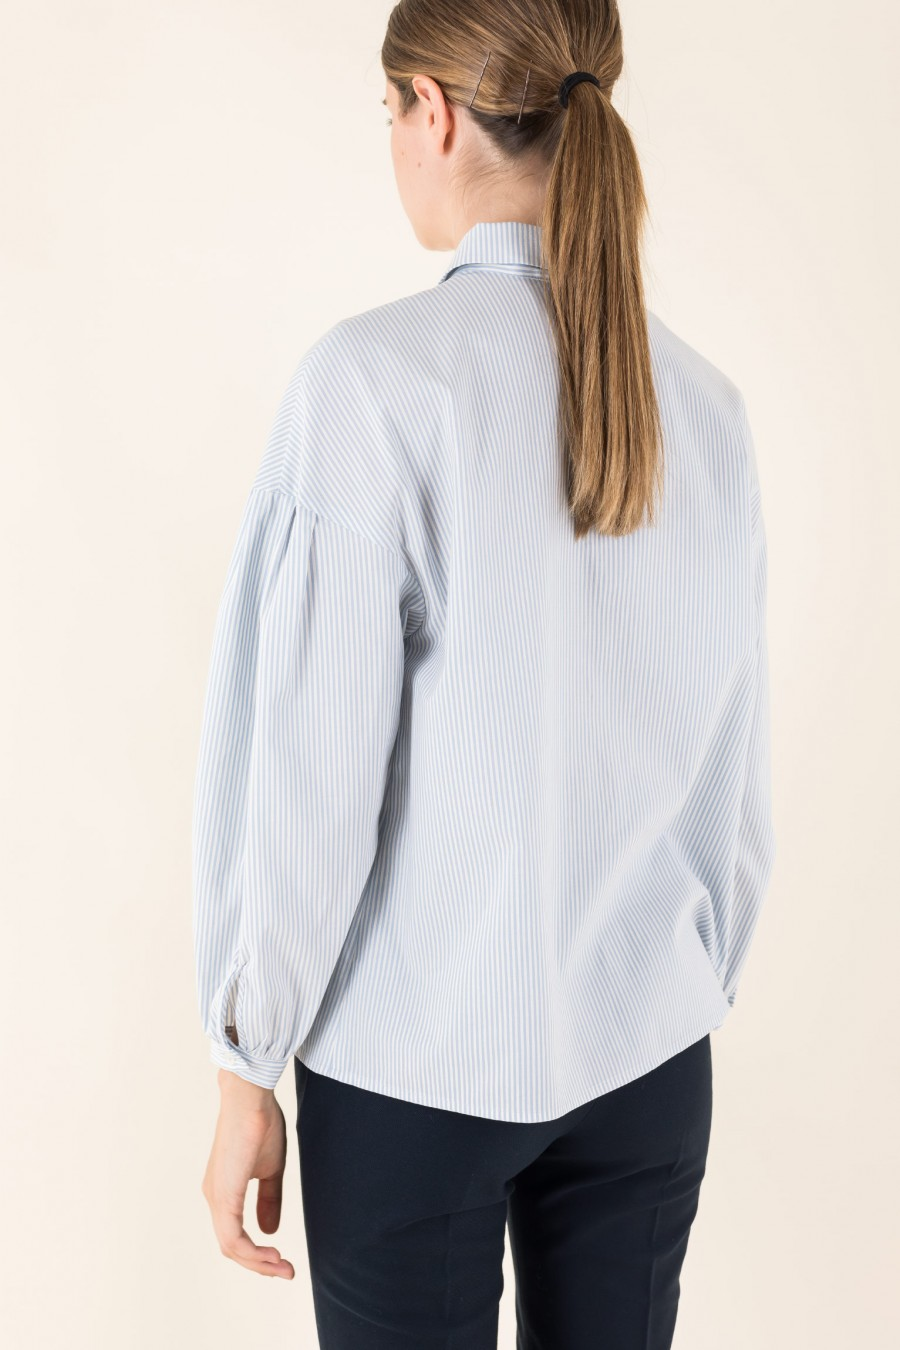 Shirt with puffy sleeves